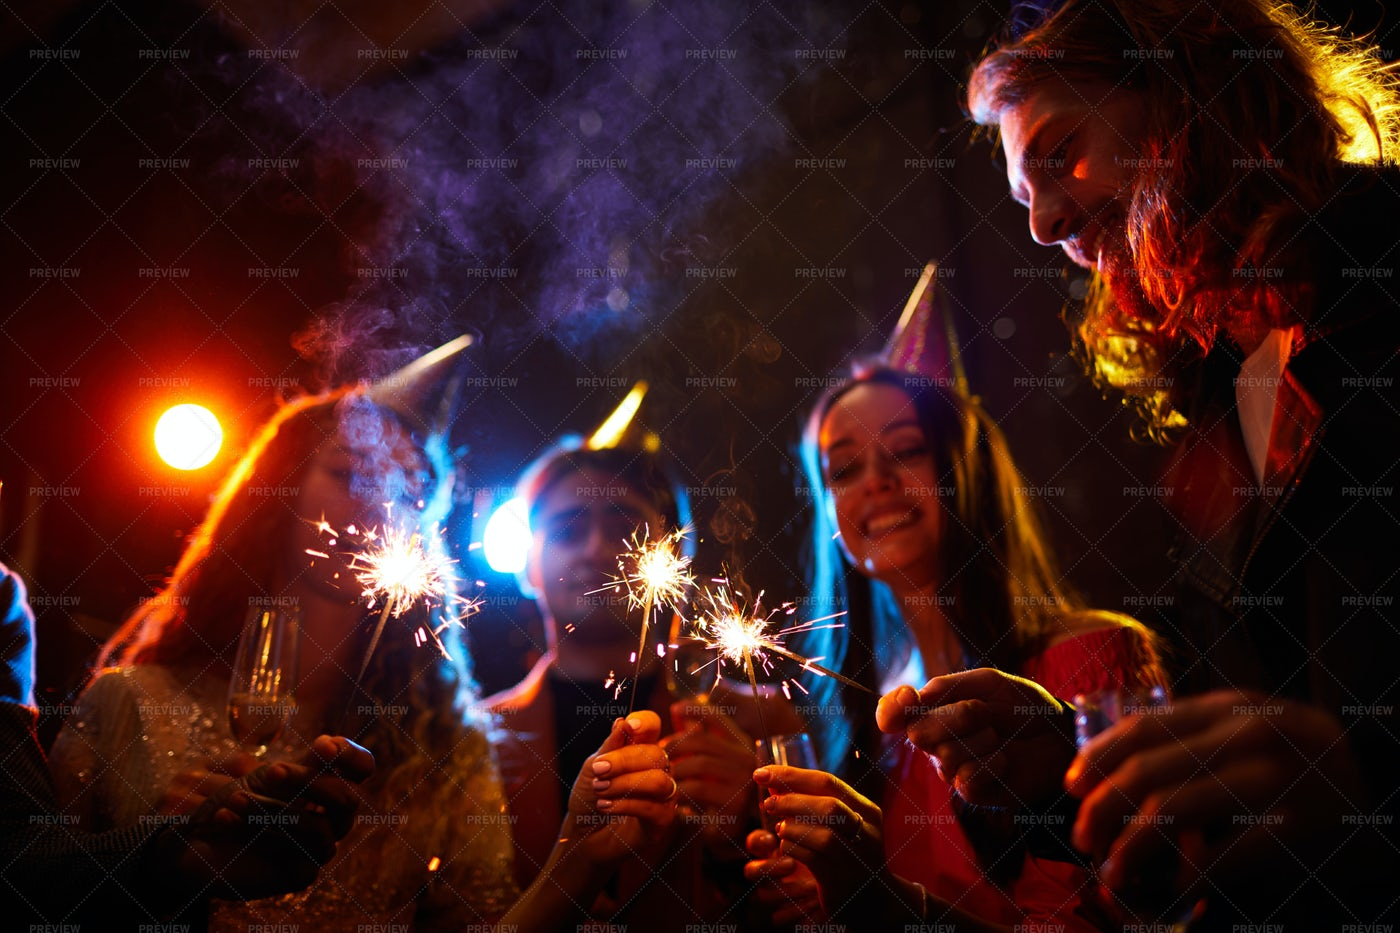 Friends Lighting Sparklers At...: Stock Photos